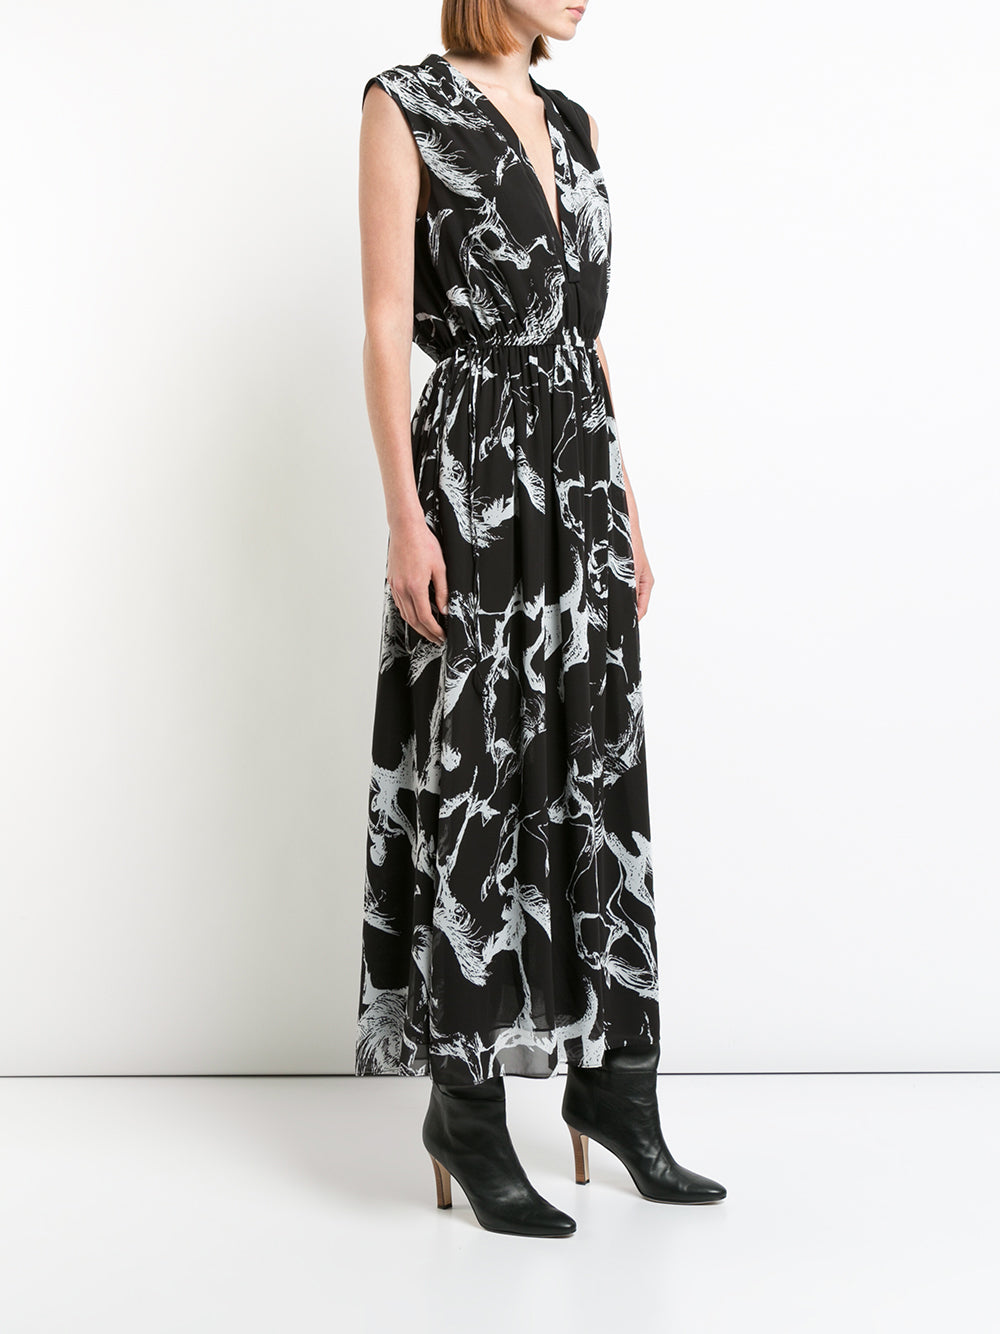 PRINTED PEBBLE CHIFFON SLEEVELESS V-NECK MIDI DRESS